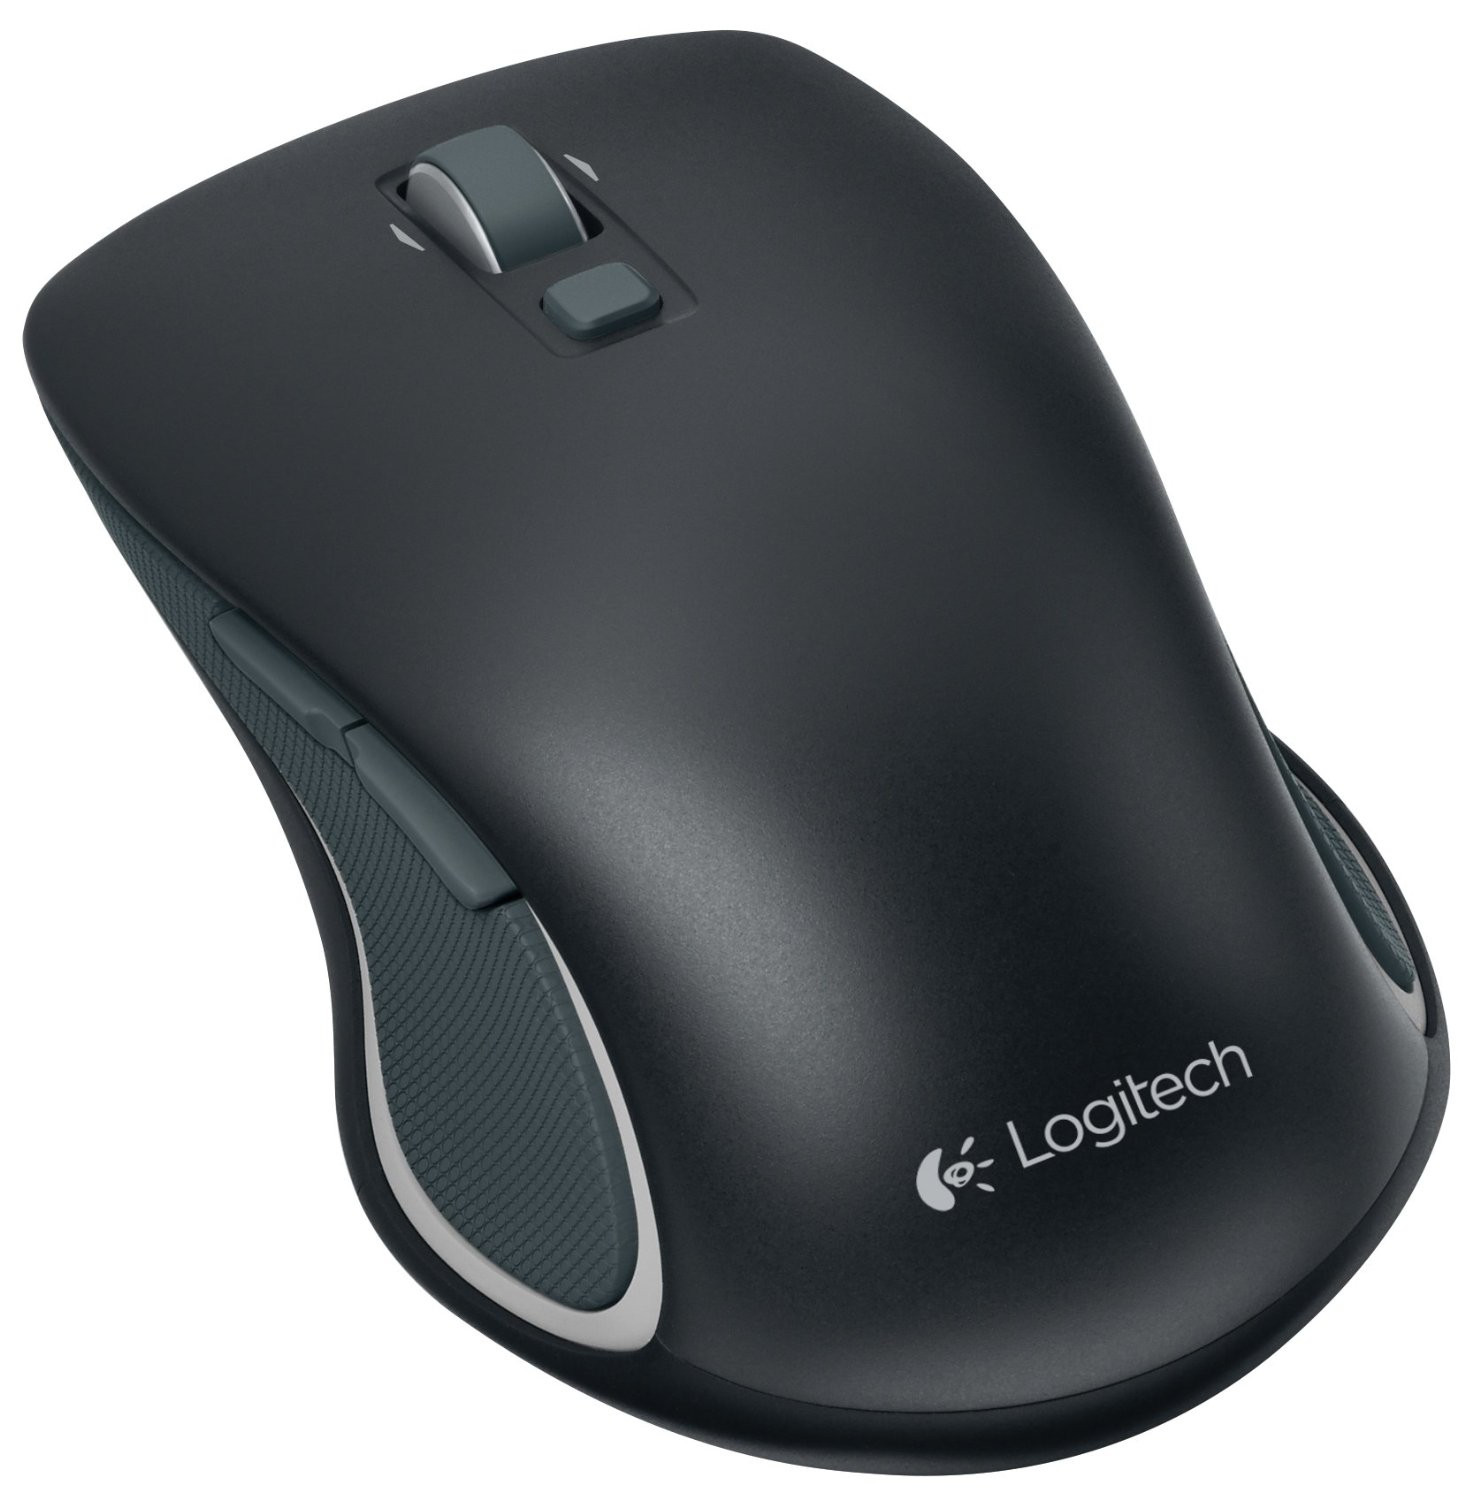 Logitech Wireless Mouse M560 logitech wireless mouse m560 черный